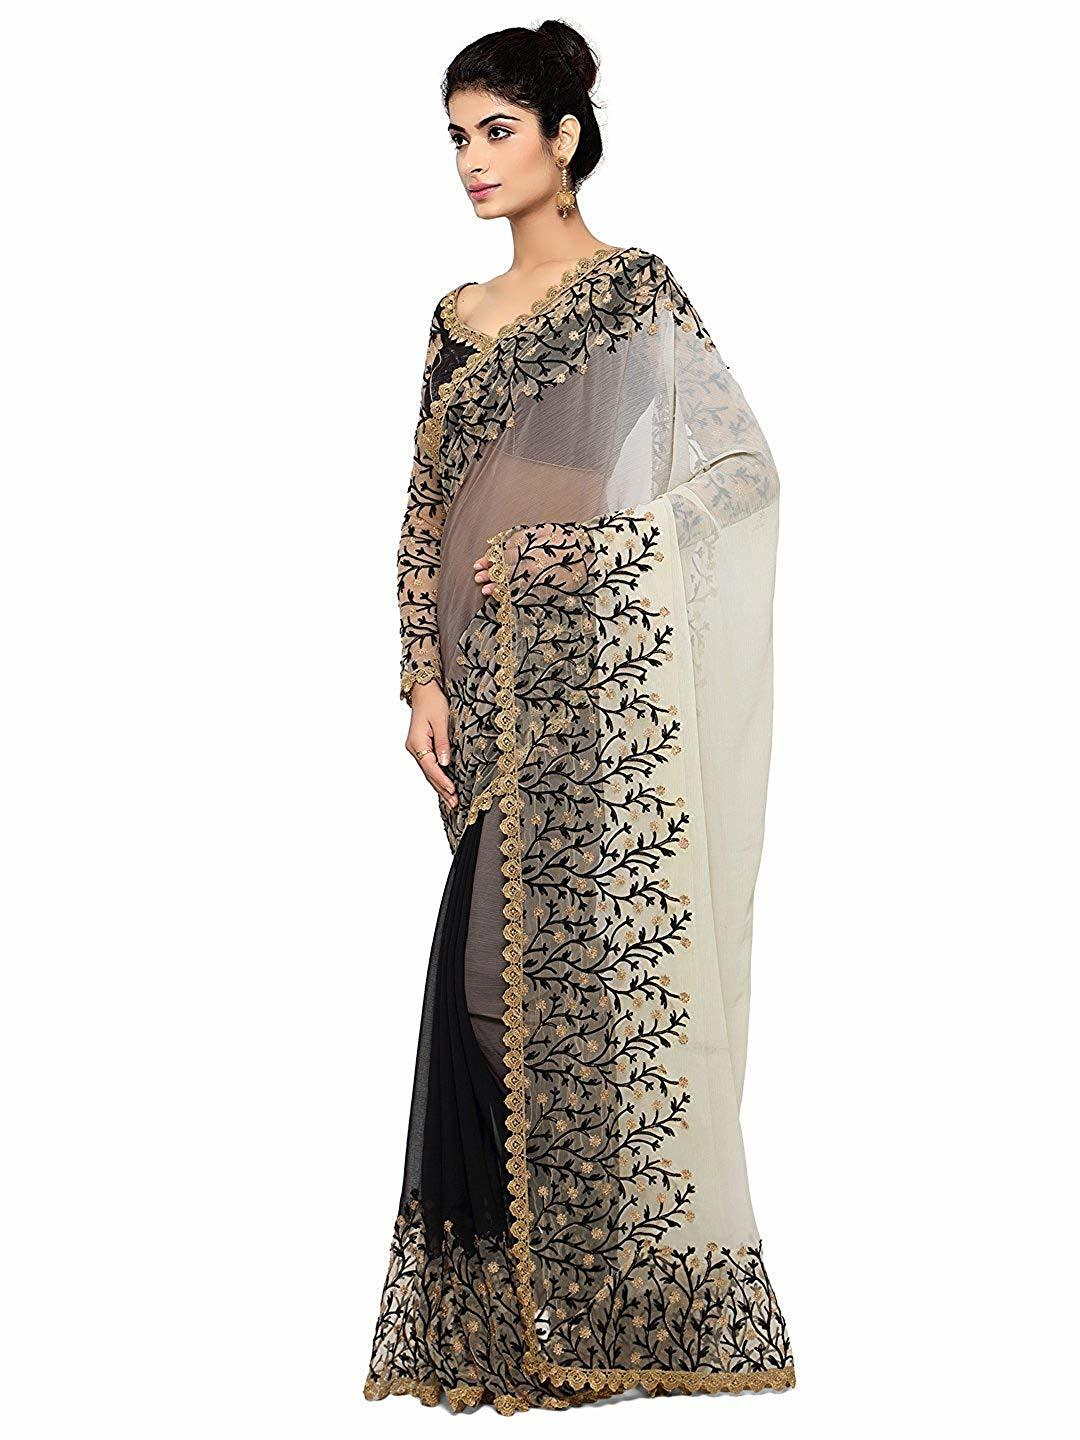 floral heavy embroidered Georgette and net saree in black